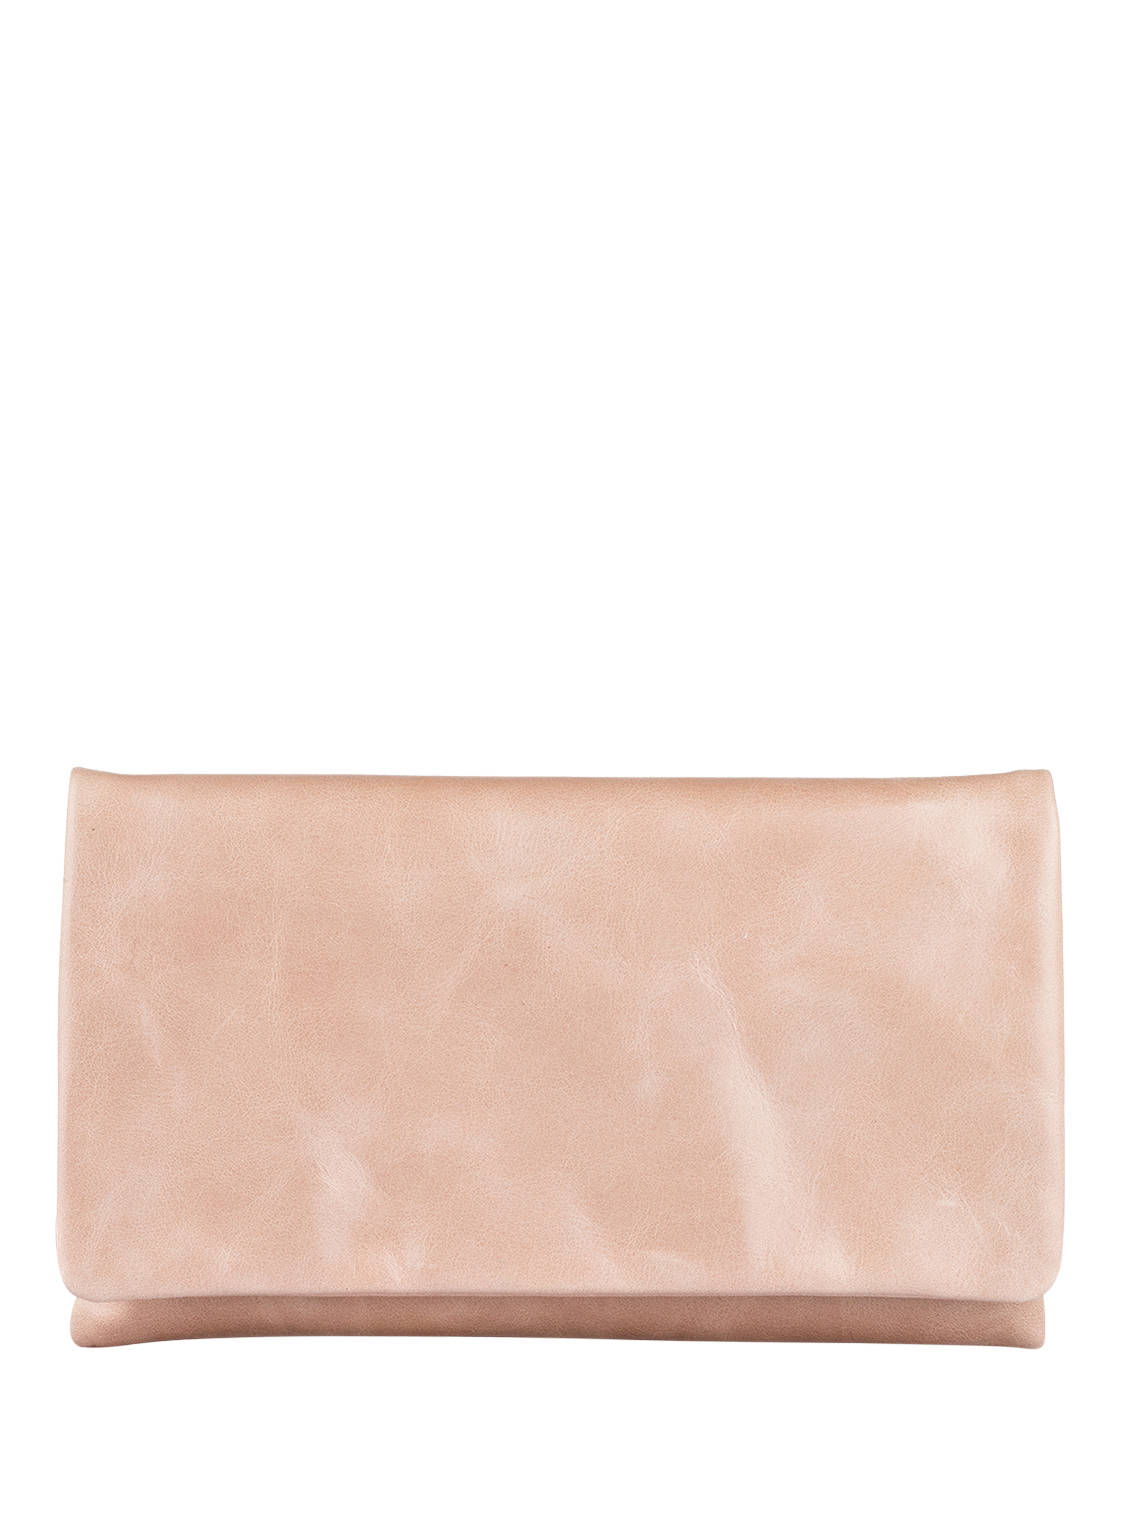 Image of Abro Clutch rosa